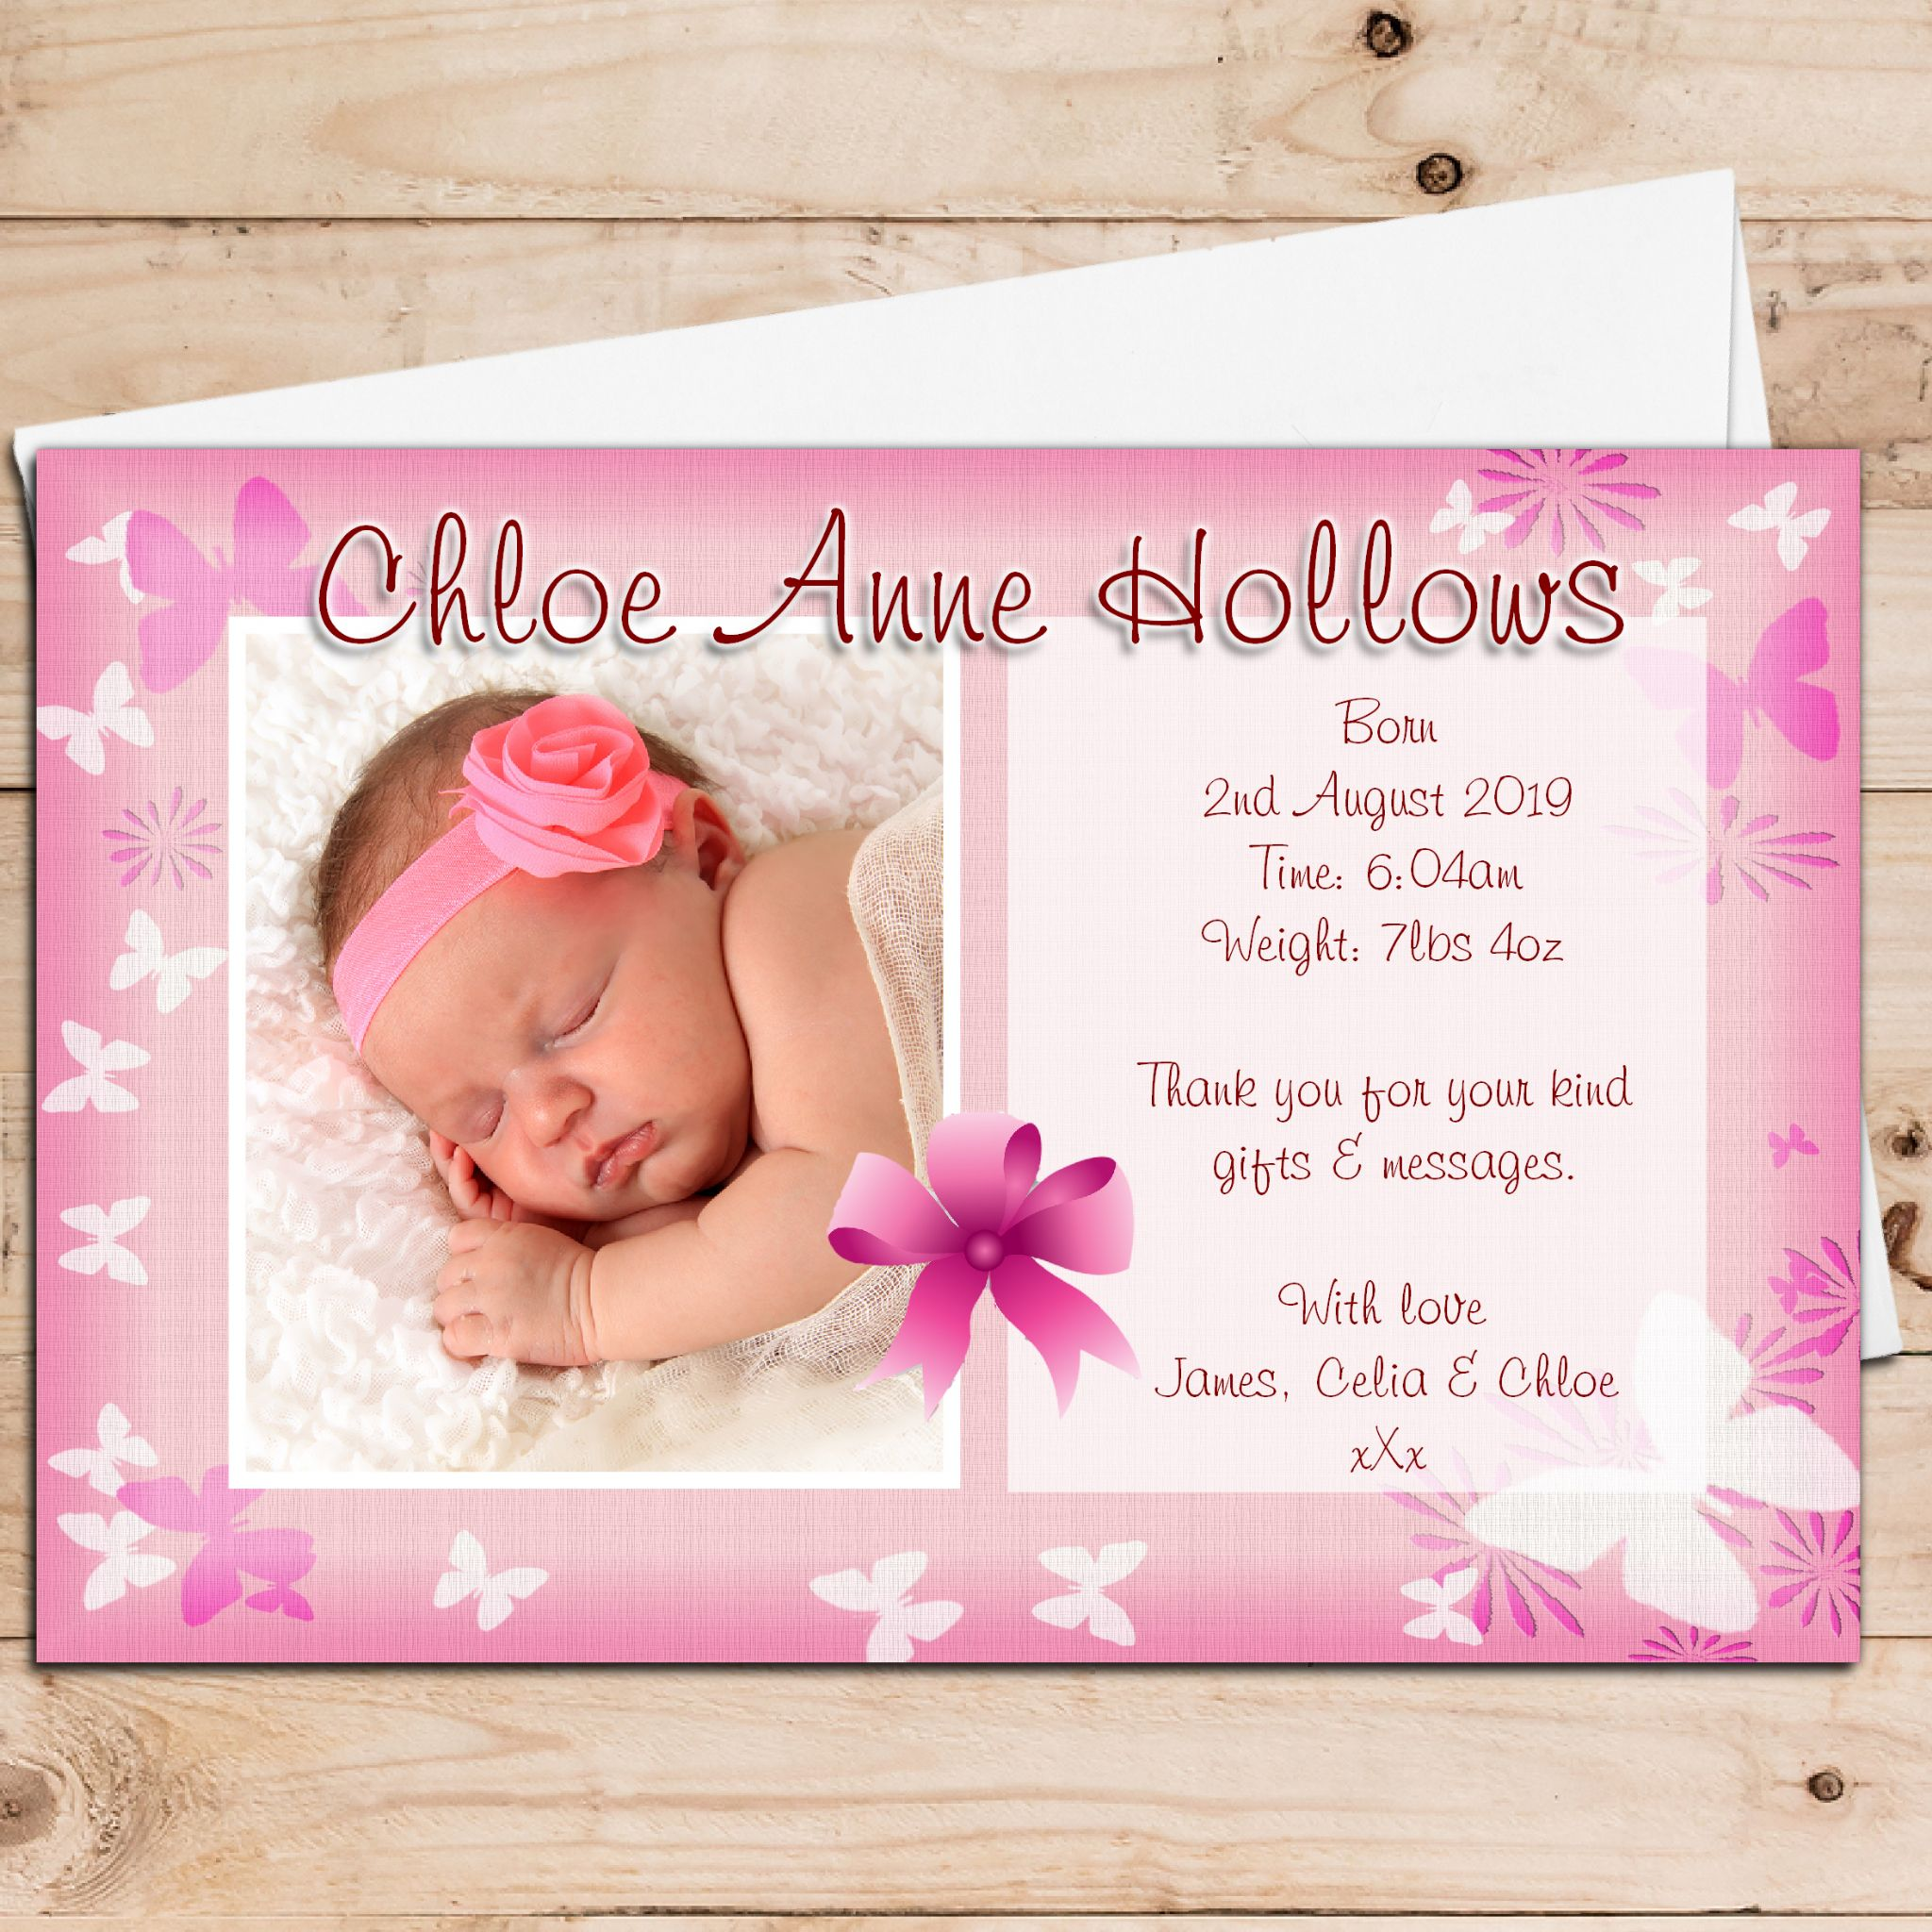 photo birth announcement cards pacqco – Baby Birth Invitation Card